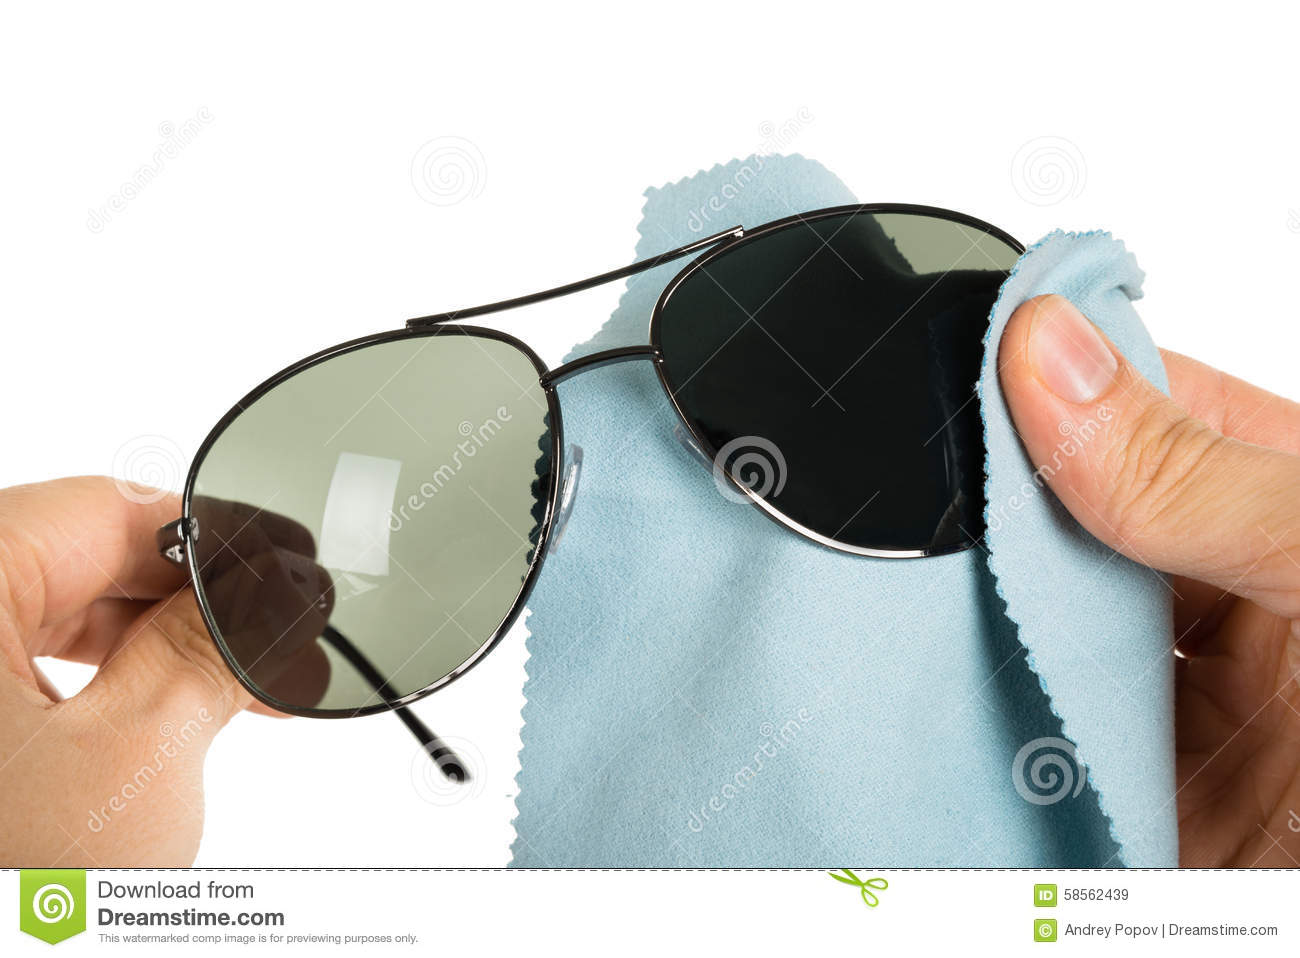 bd56956b5e Person Cleaning Sunglasses stock image. Image of napkin - 58562439